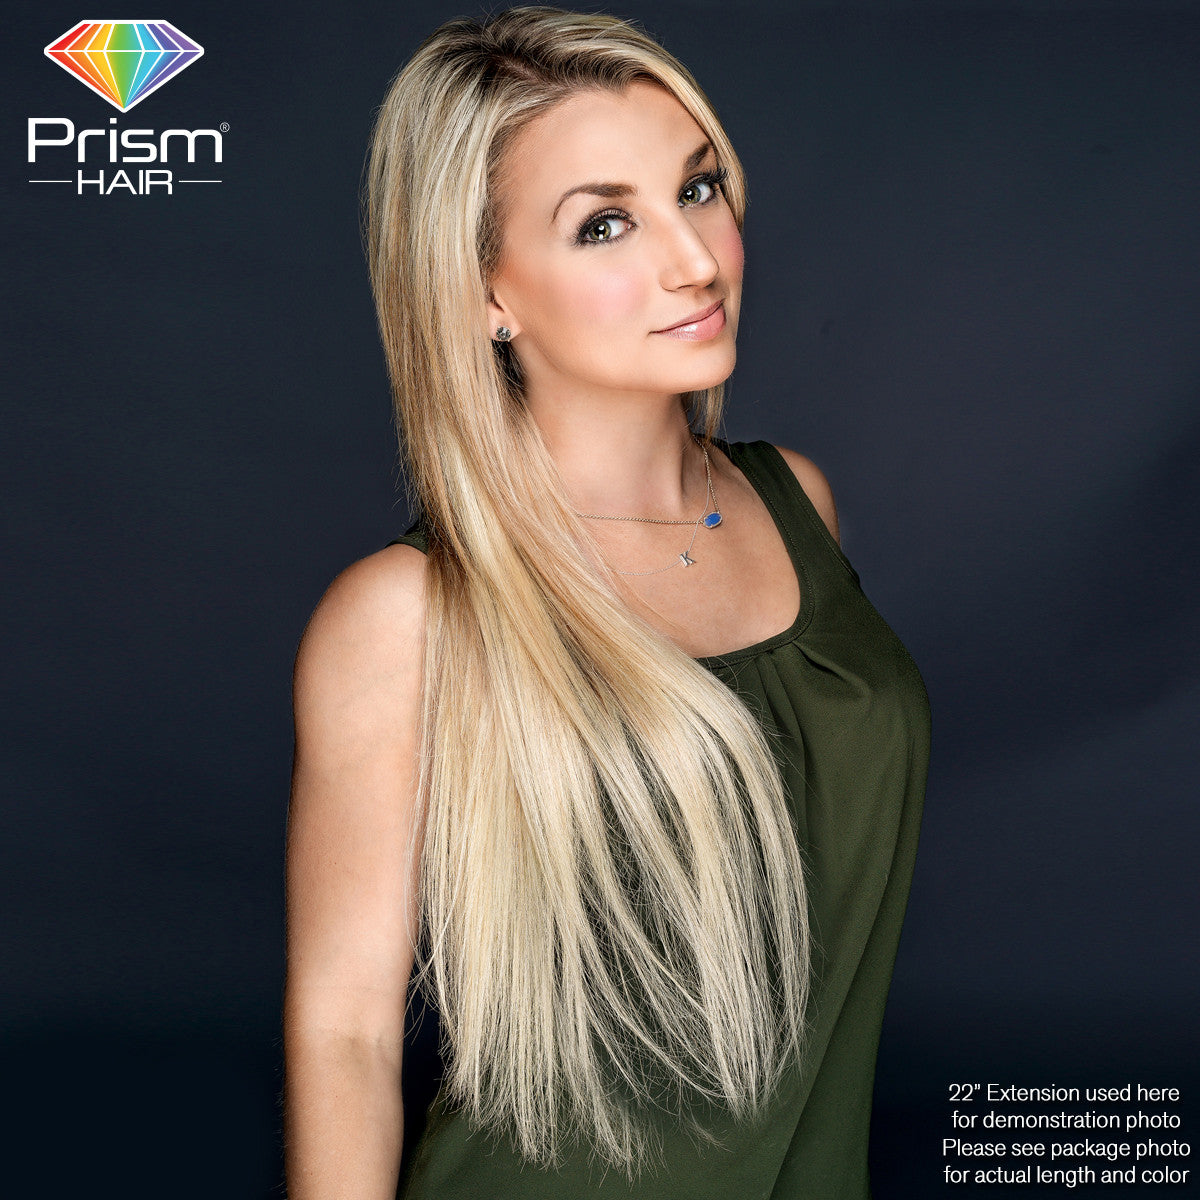 Prism Hair Extension 16 Blonde 00749 Rockstar Wigs